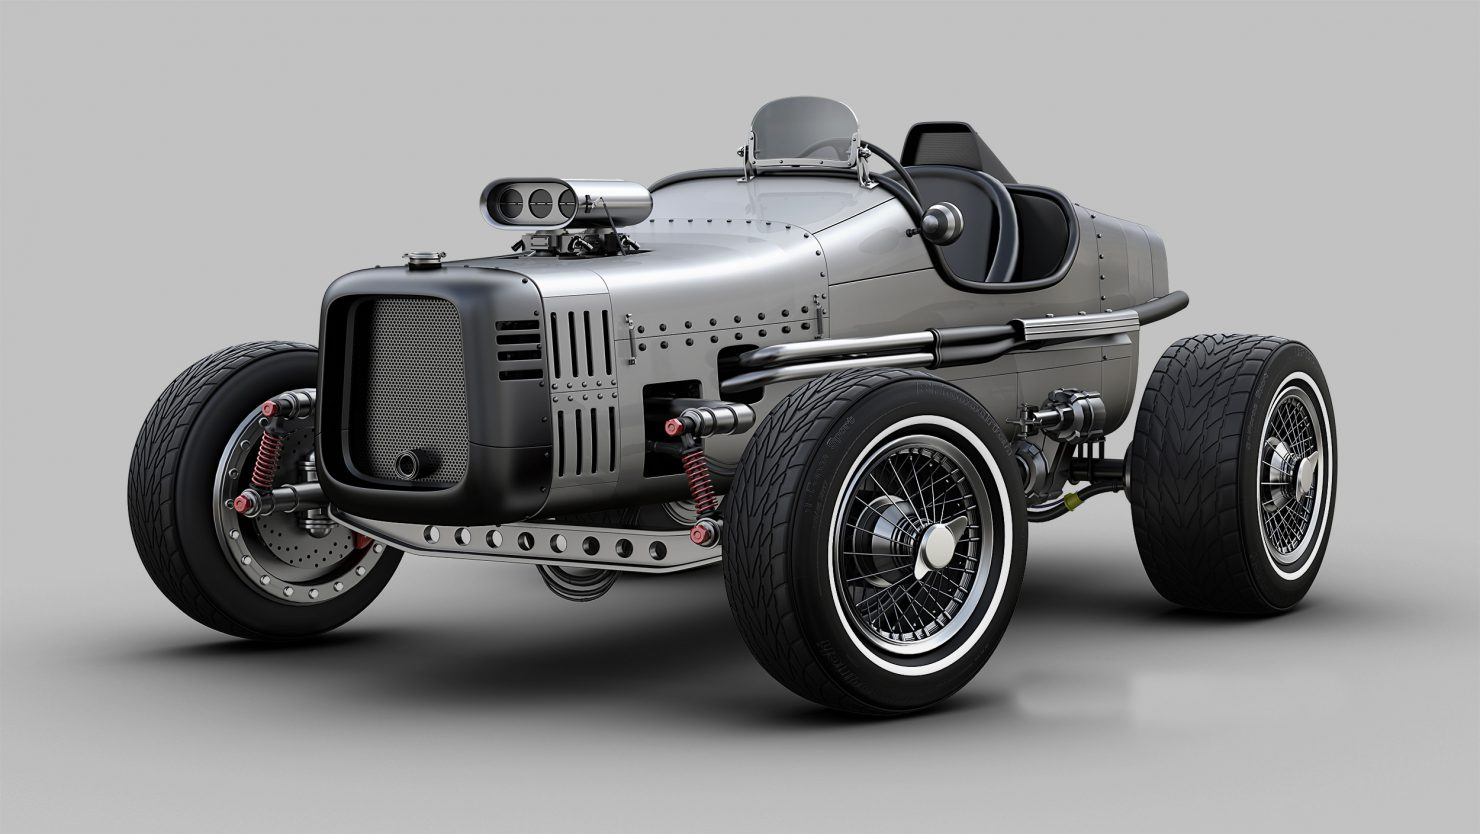 BONEVILLE HOT ROD 1480x834